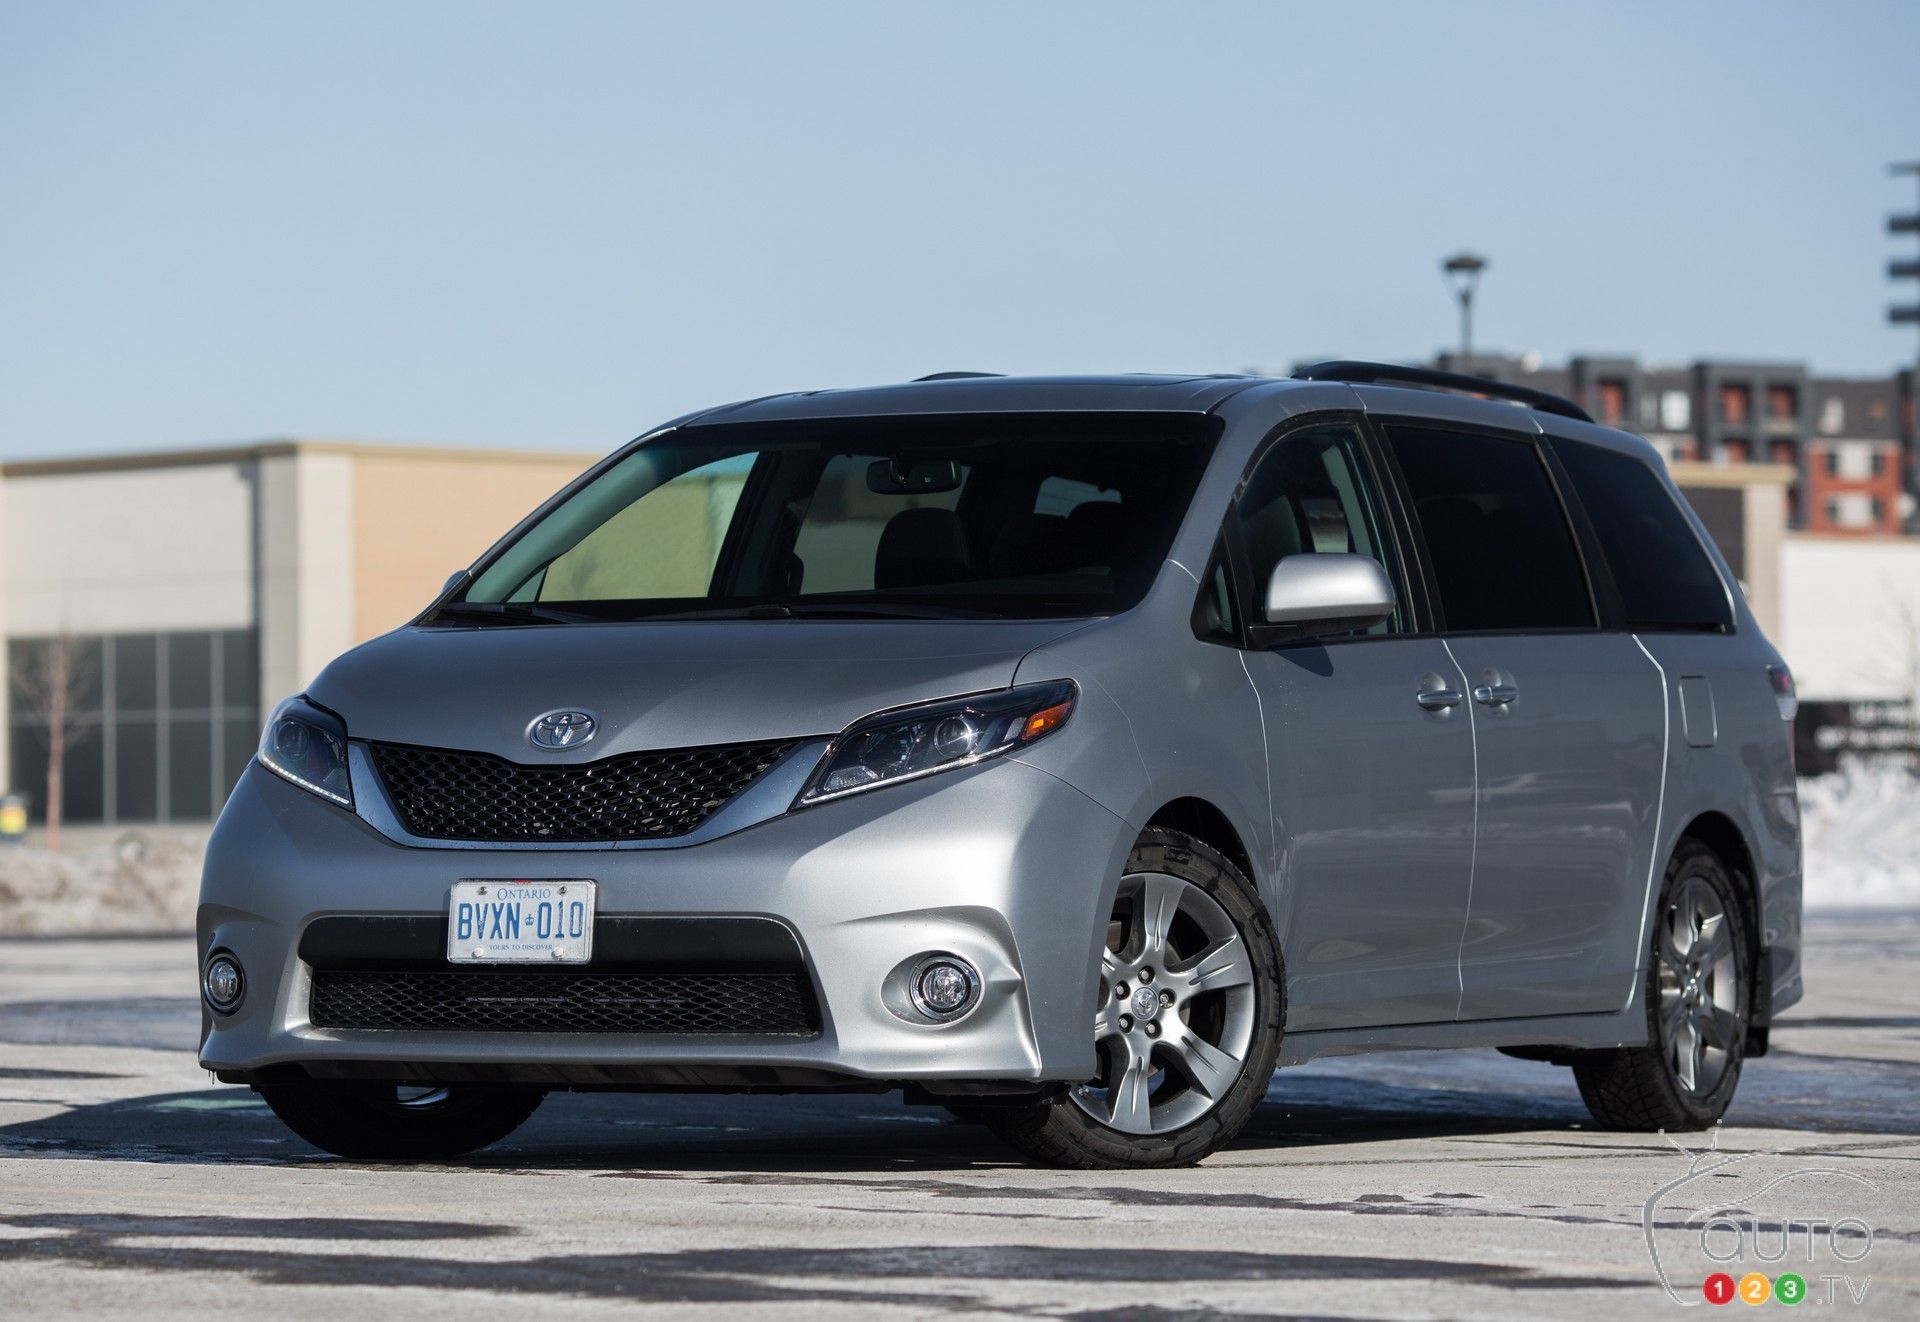 2015 toyota sienna se review auto123 as a minivan one of few the 2015 toyota sienna. Black Bedroom Furniture Sets. Home Design Ideas